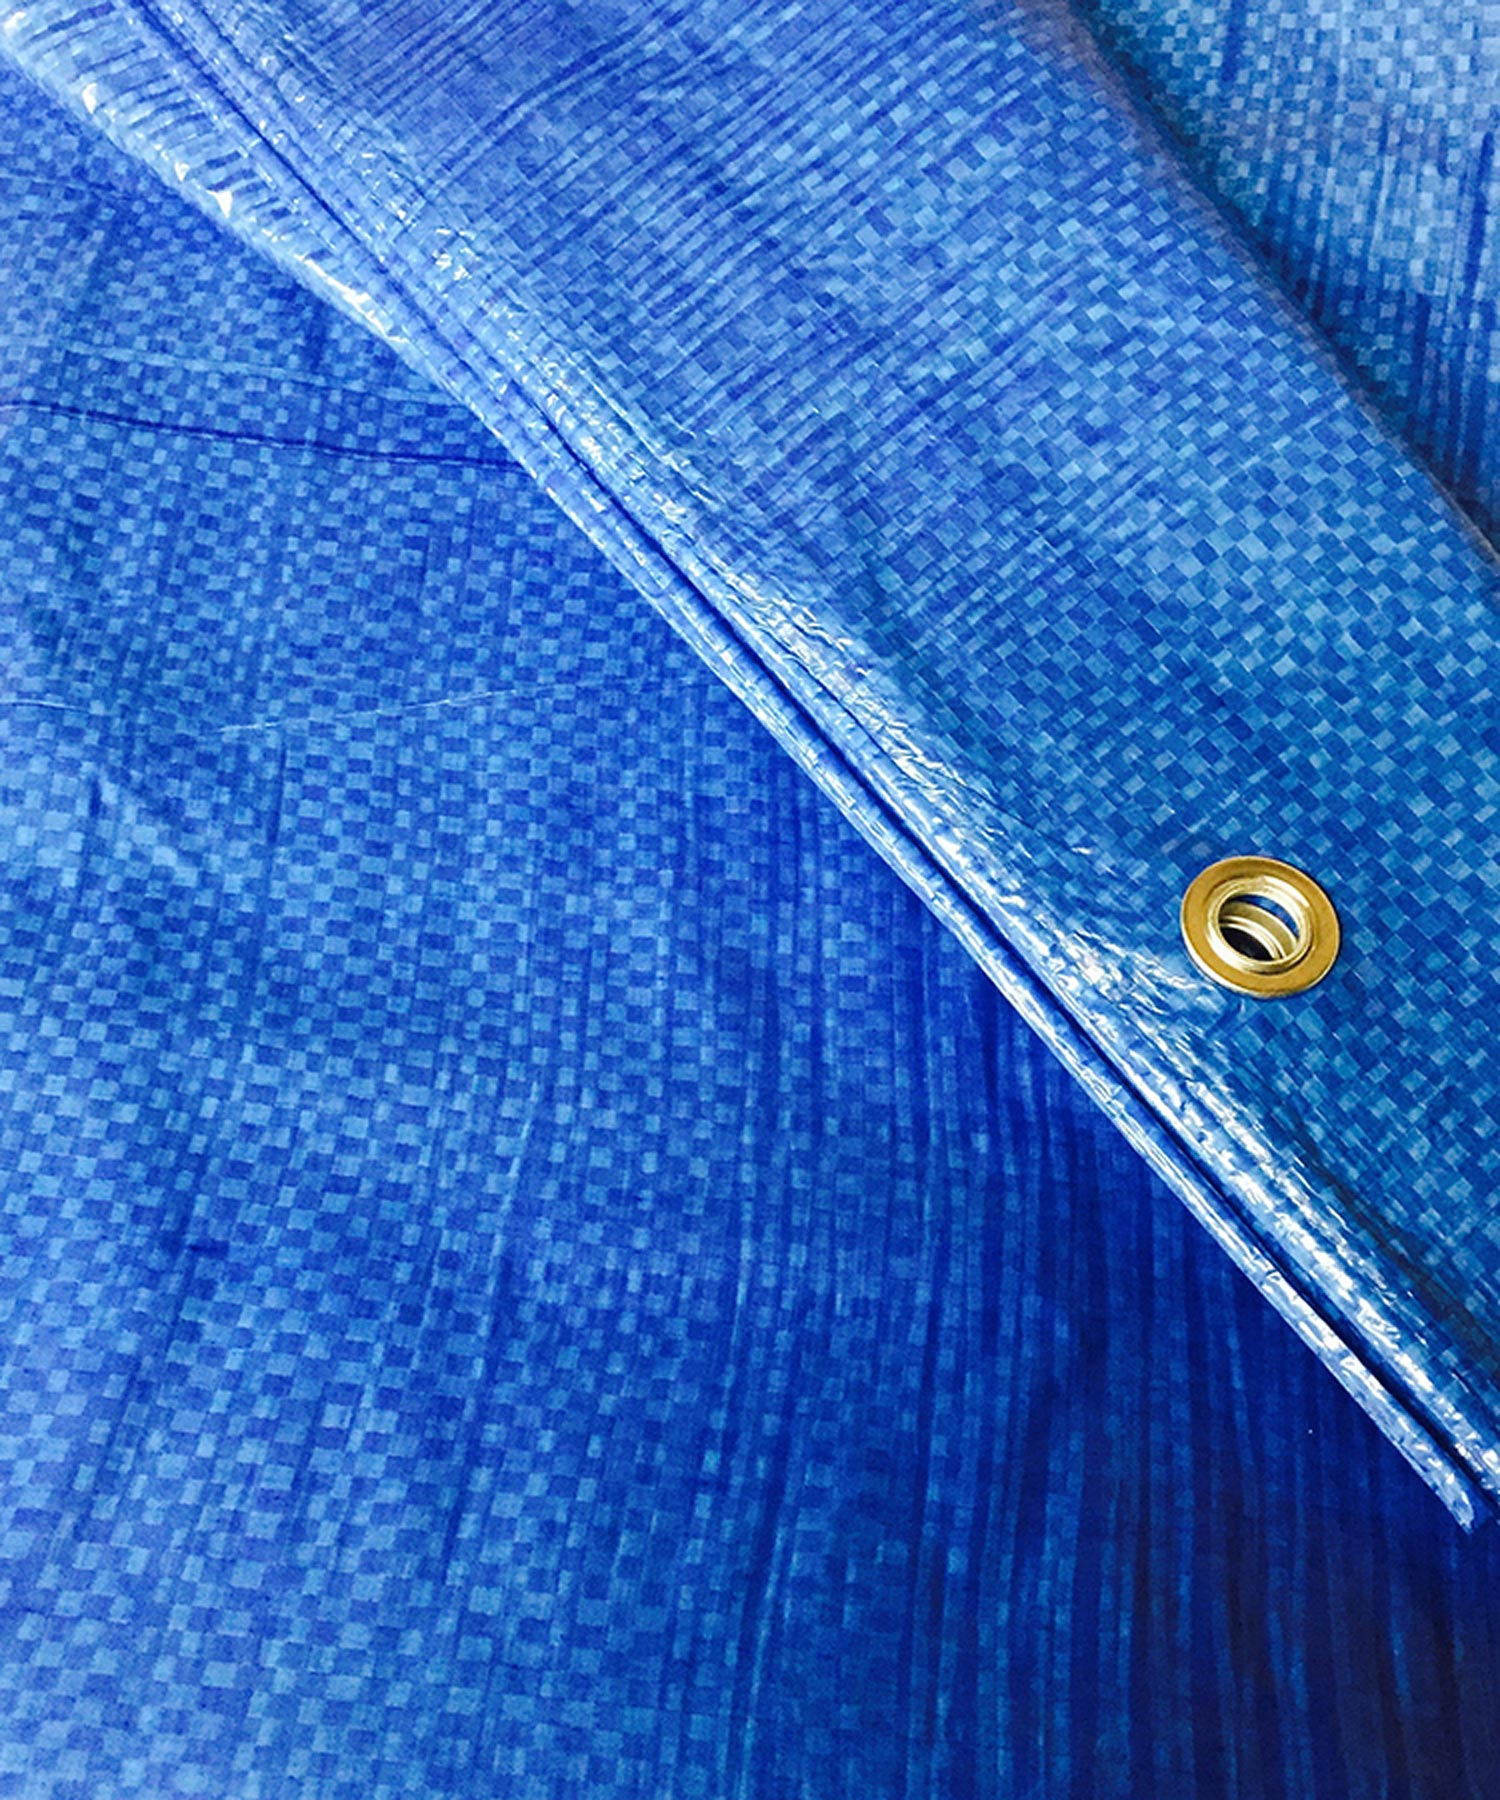 Blue Poly Tarps Heavy Duty Water Resistant